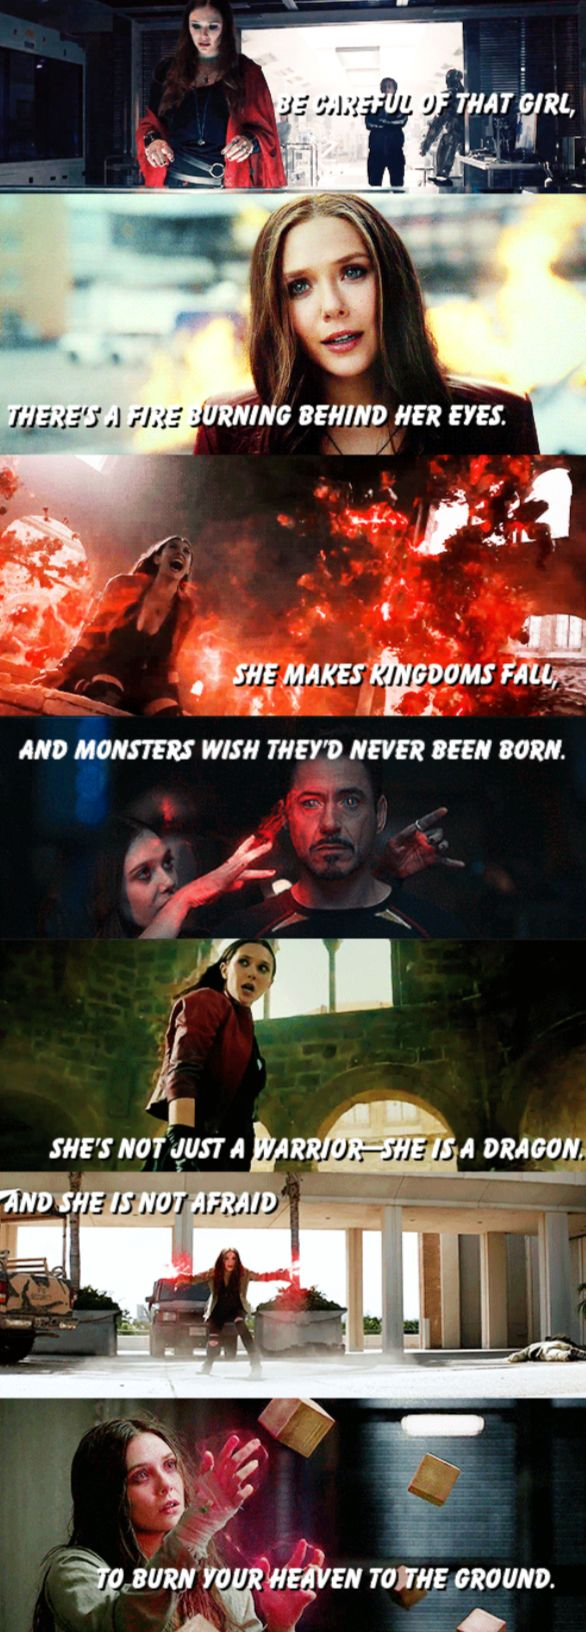 I just got chills from this. Wanda is probably my favorite character in the Mavel universe